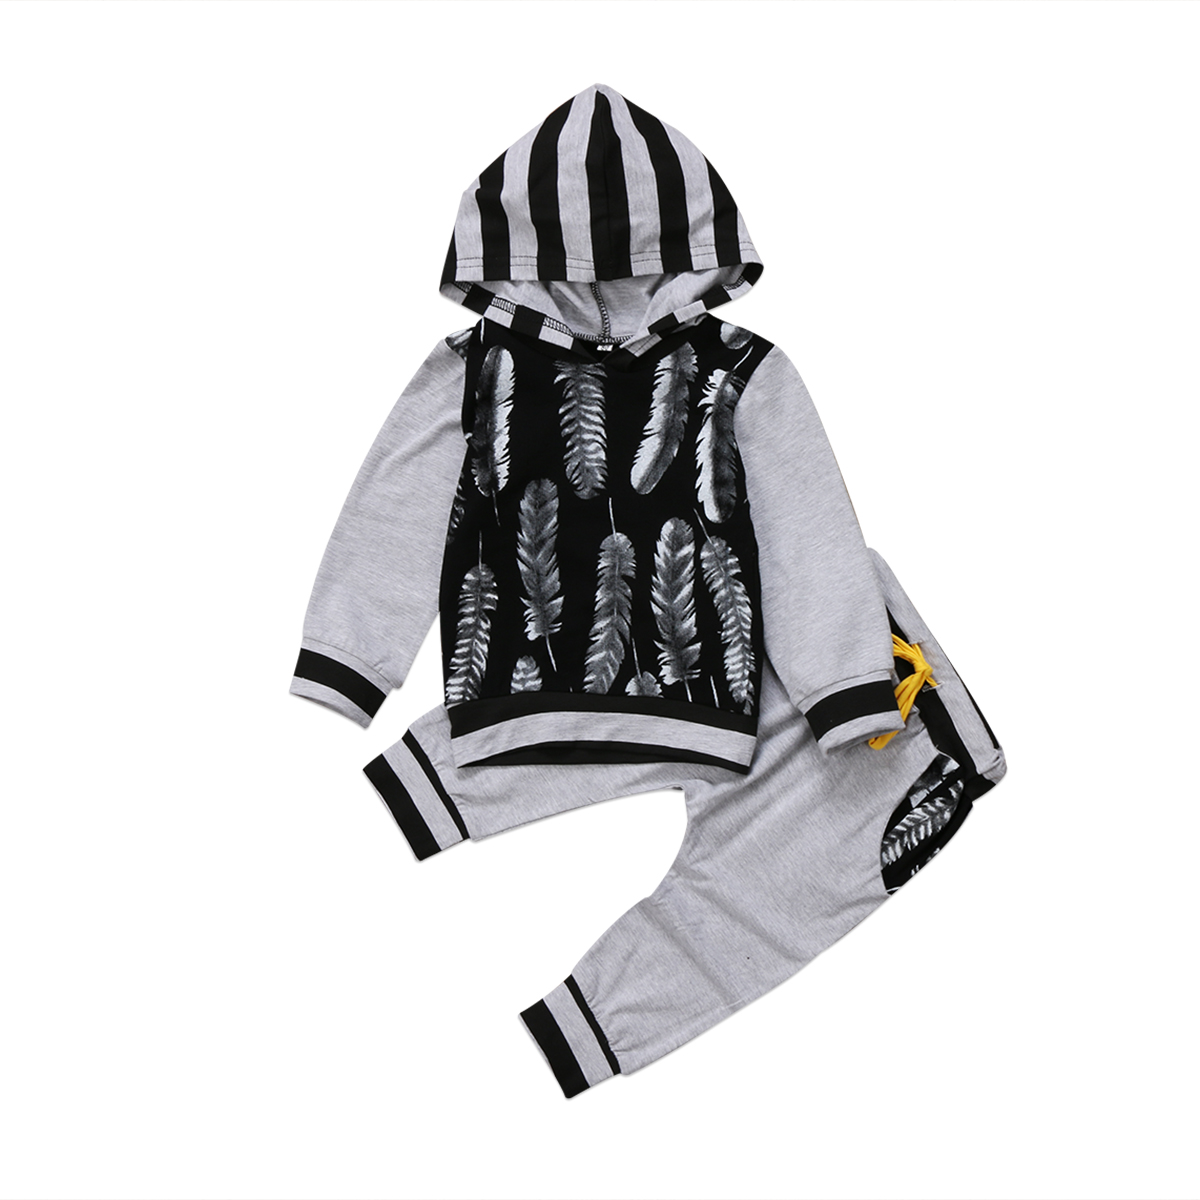 Autumn Spring Baby 2pcs Set Newborn Infant Kids Baby Boy Cotton Clothes Tops Hoodies T shirt+Long Pants Feather Outfits Set